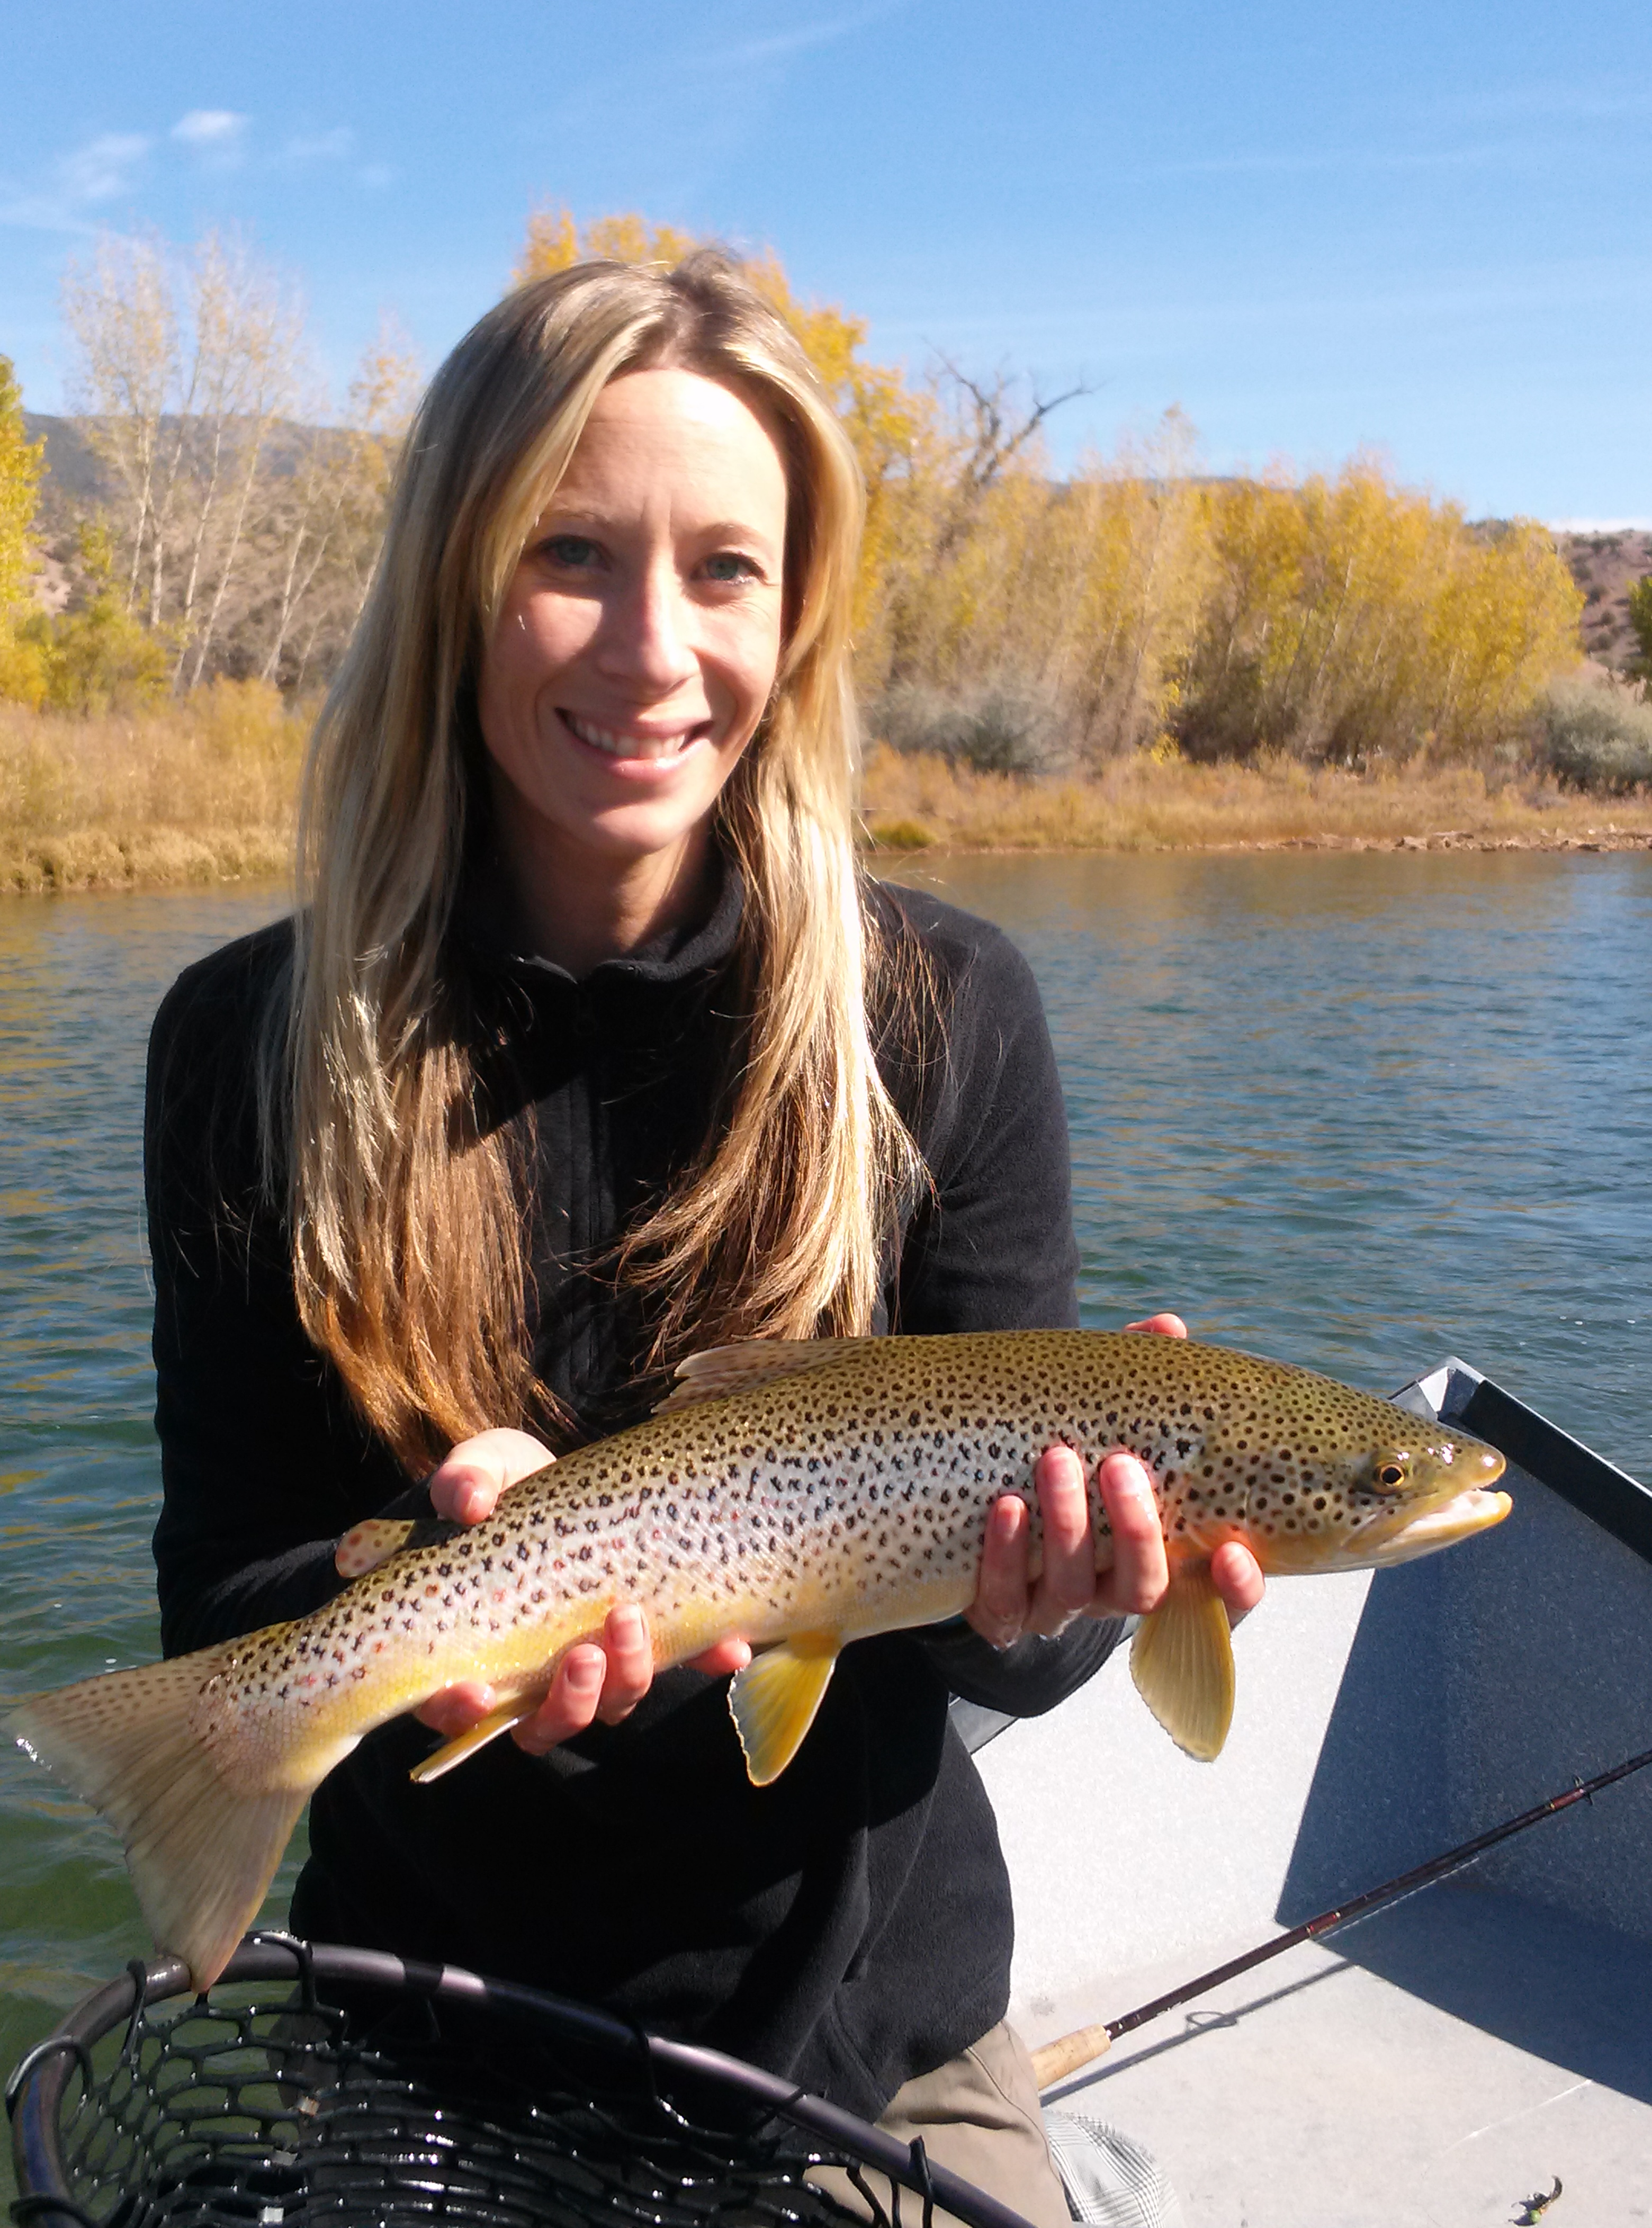 Winter rates green river dry fly utah for Trout fishing utah